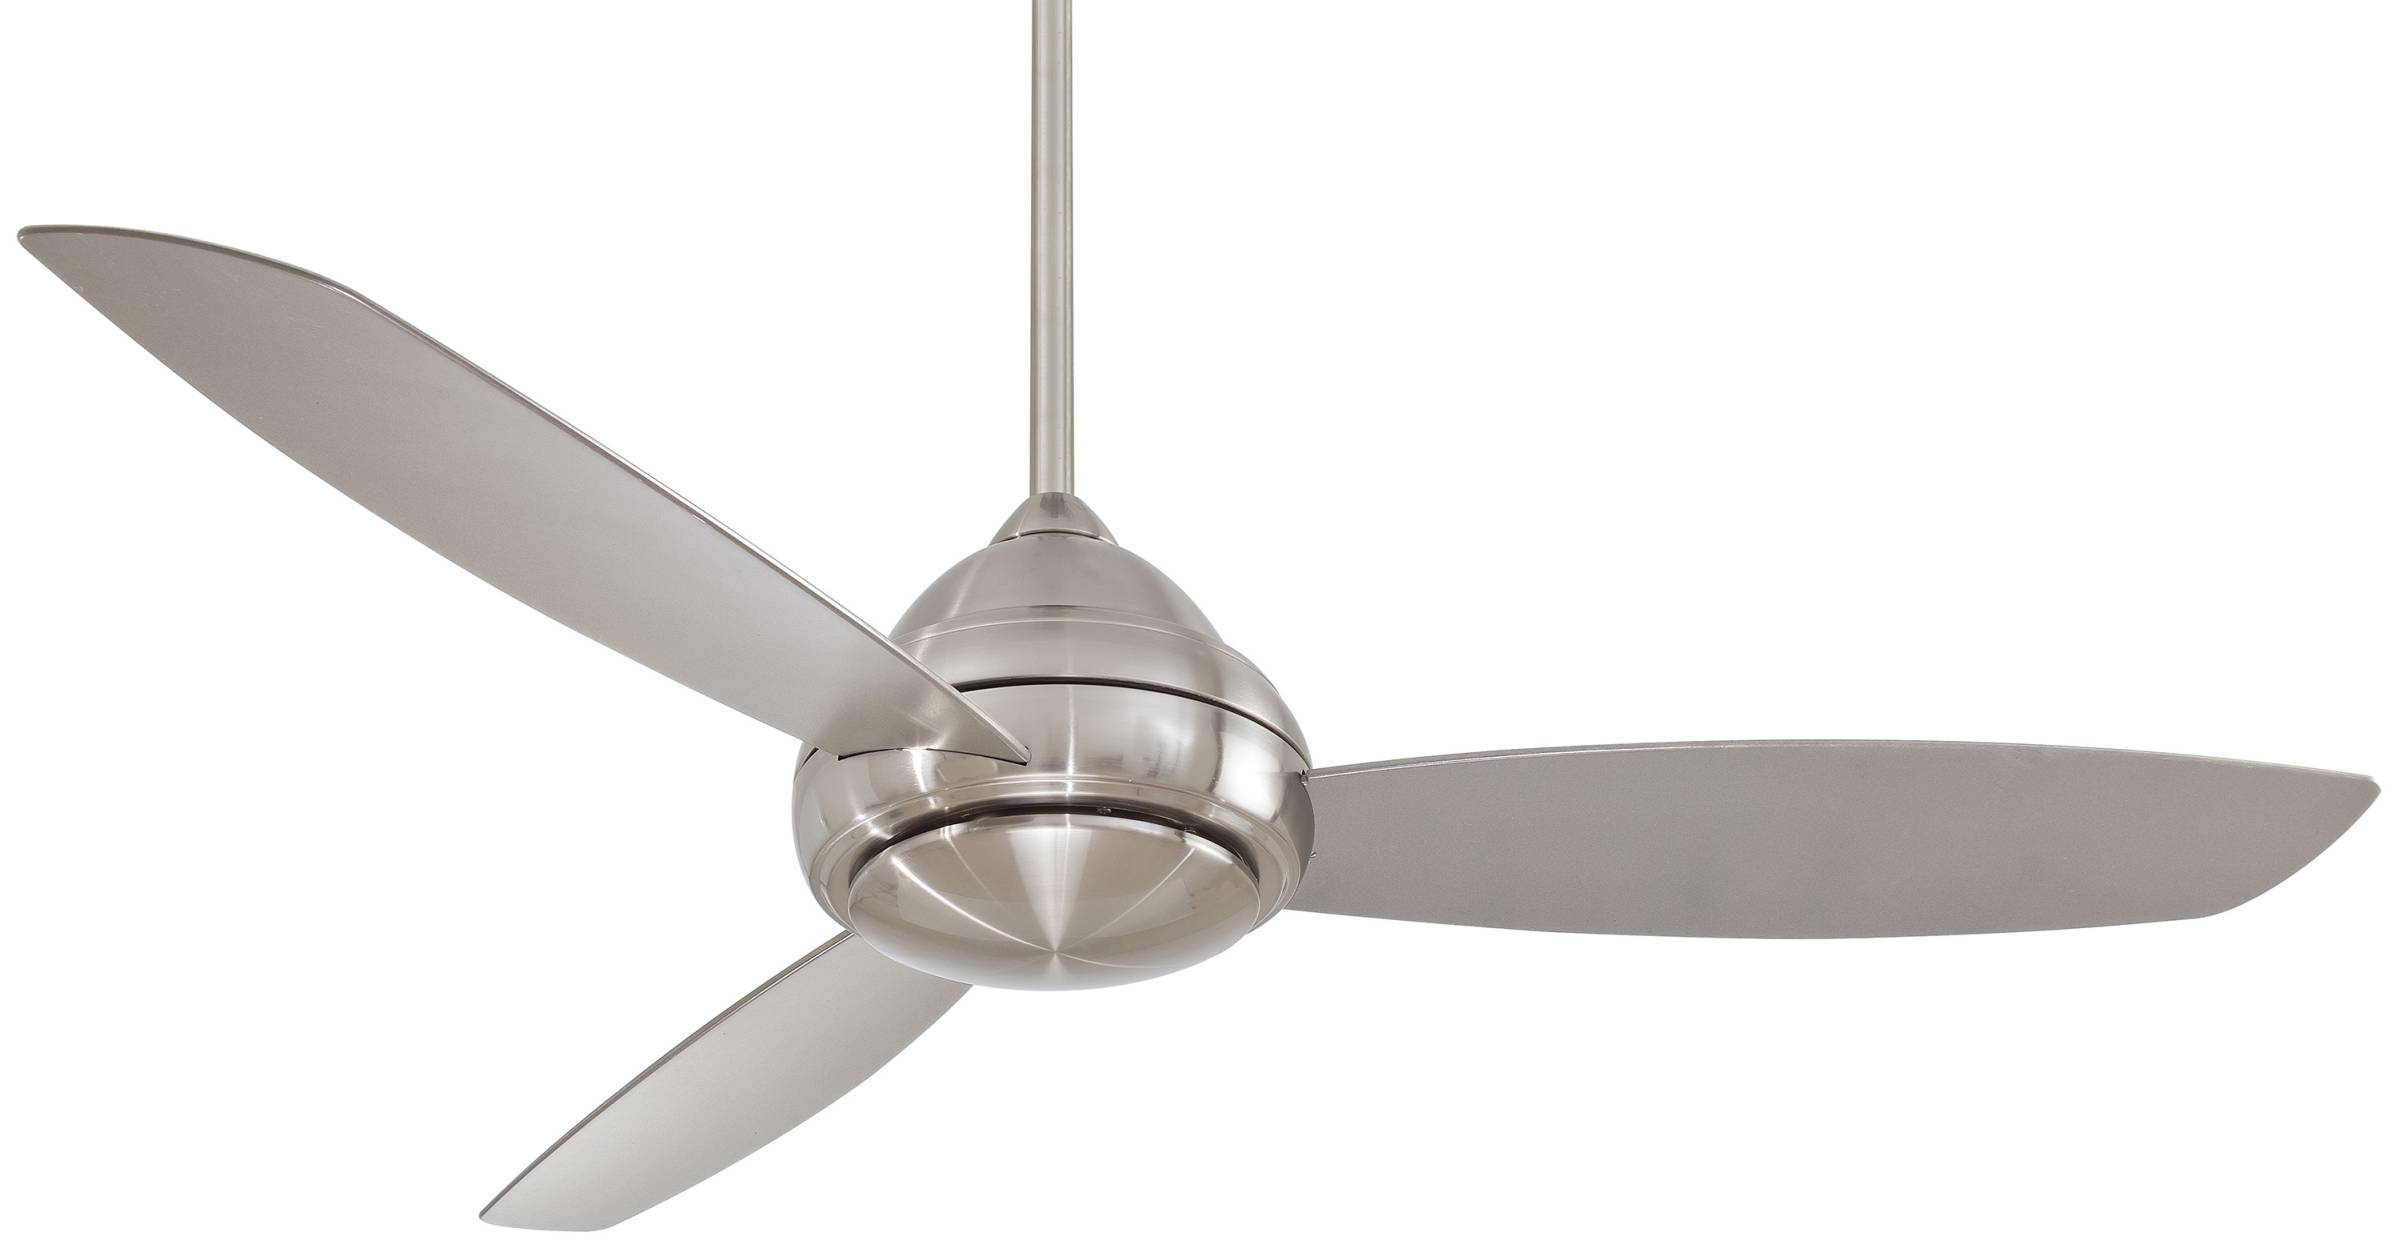 Childrens Ceiling Fans 10 Reasons To Install Stainless Steel Outdoor Ceiling Fans